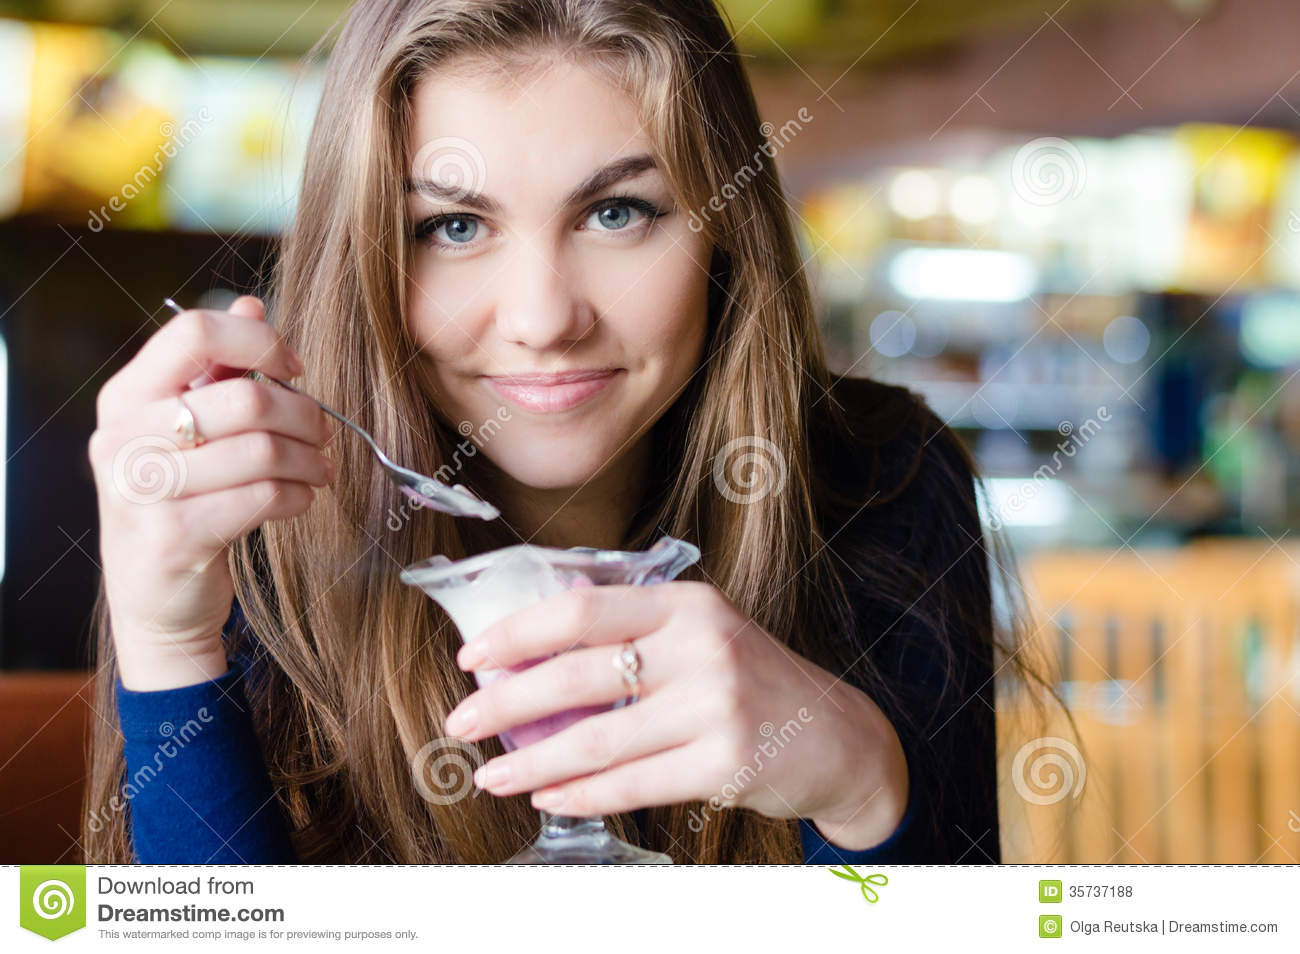 Young happy woman eating ice cream in cafe